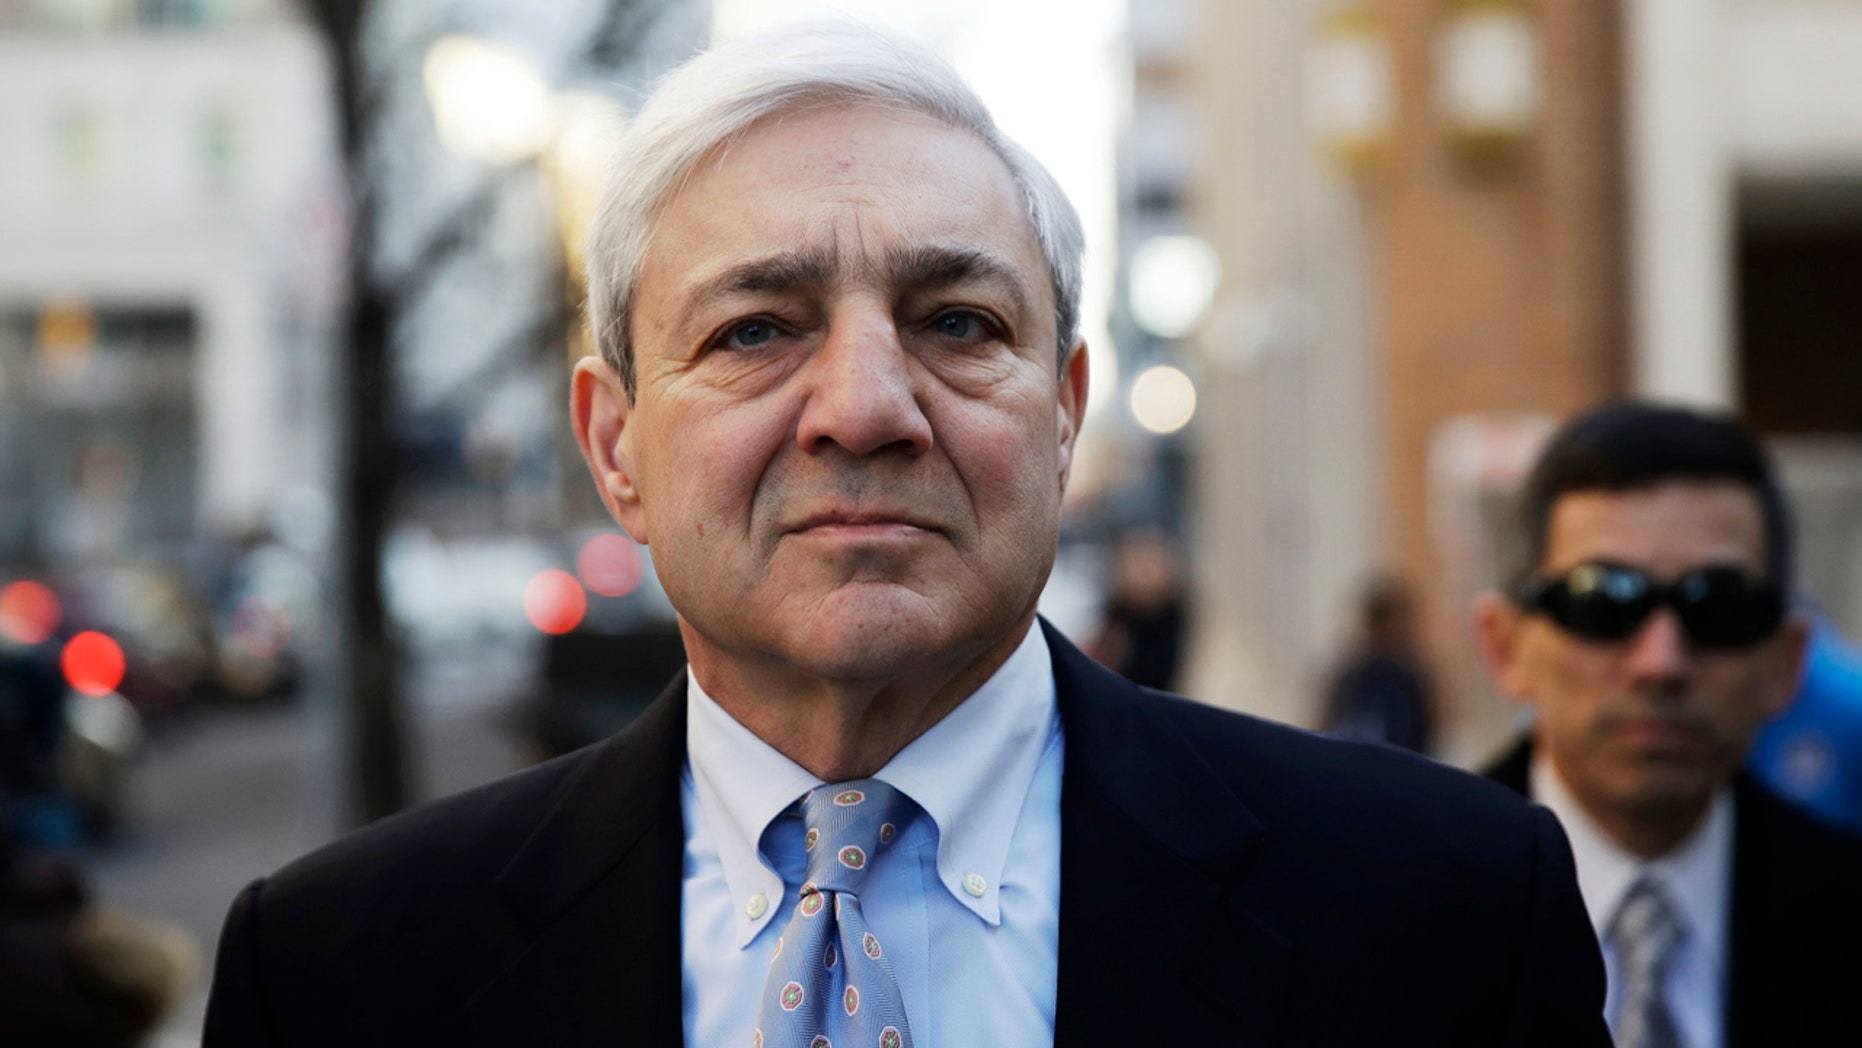 Former Penn State president Graham Spanier walks to the Dauphin County Courthouse in Harrisburg, Pa., Monday, March 20, 2017.